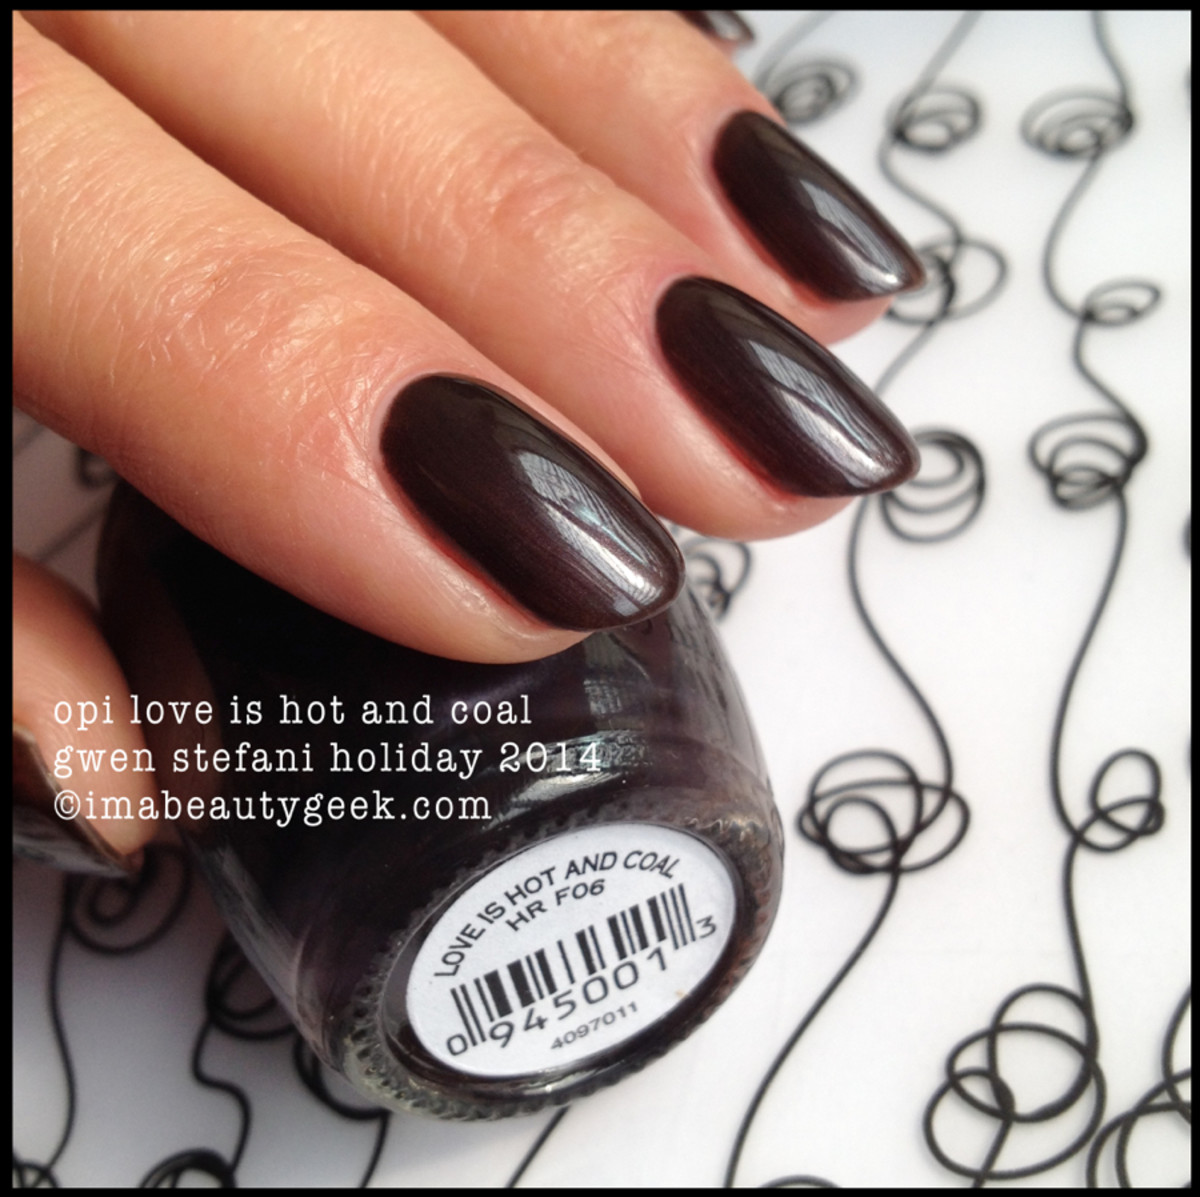 opi gwen stefani holiday 2014: love is hot and coal